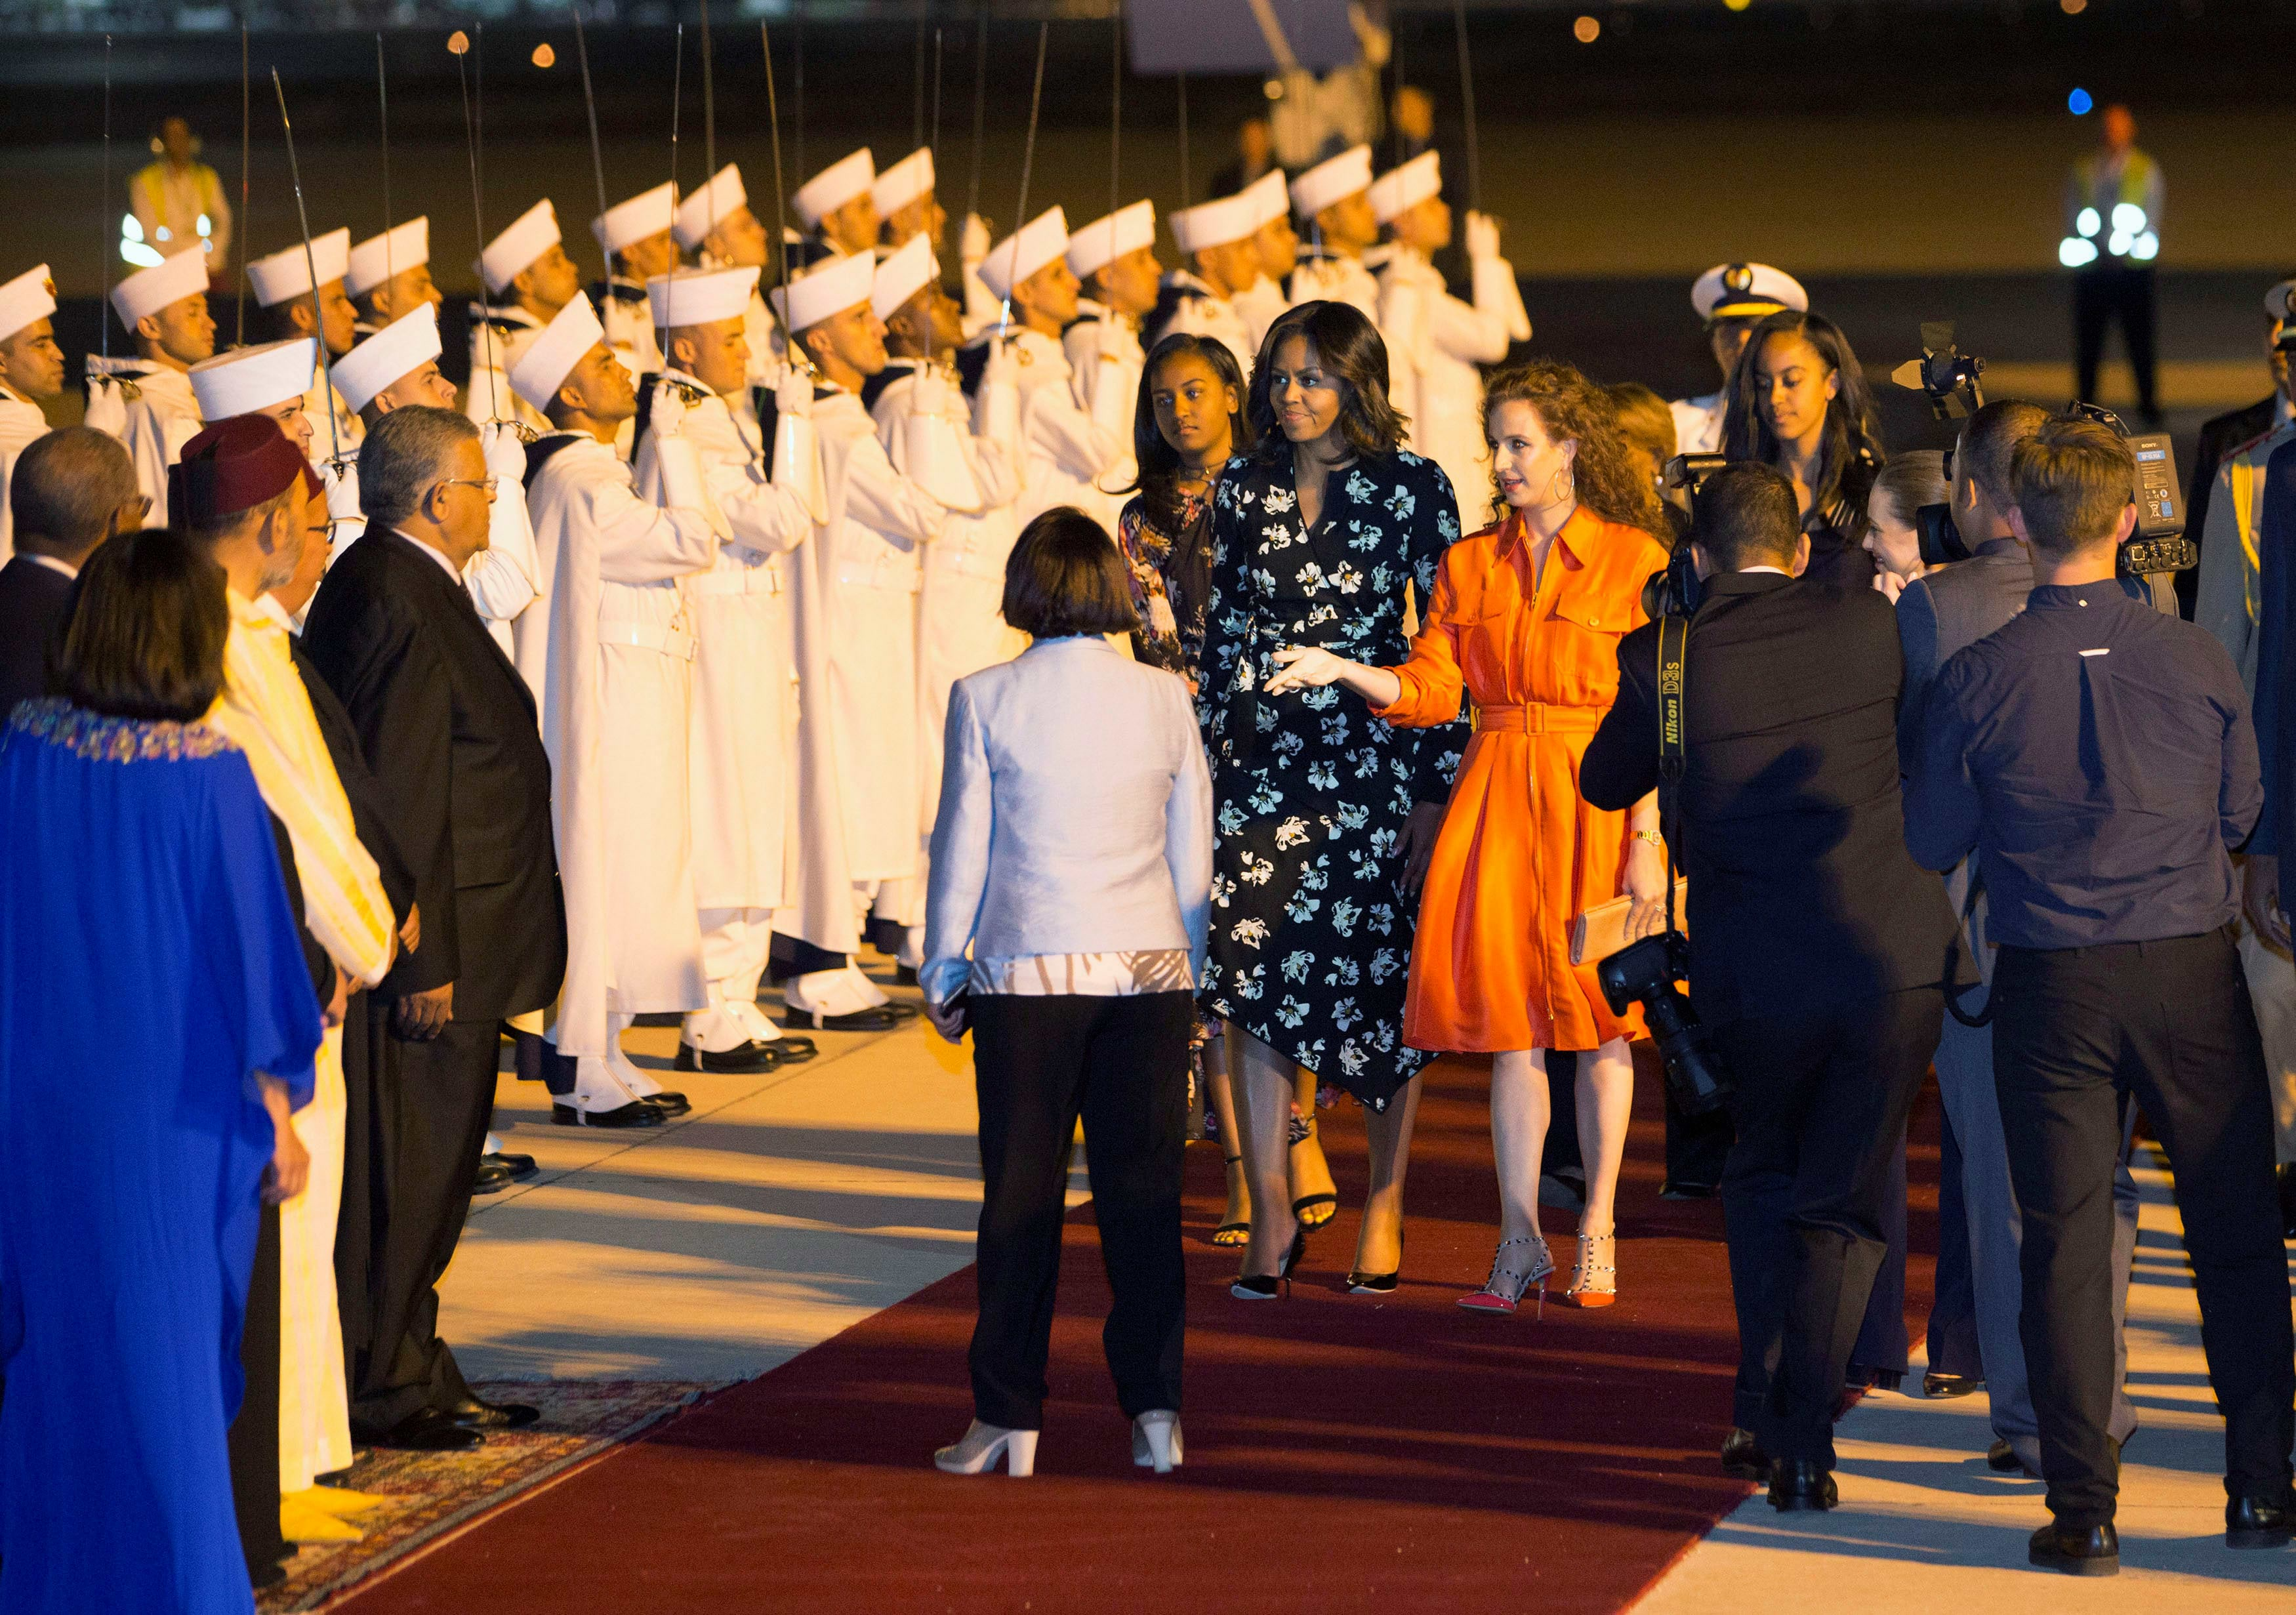 U.S. first lady Michelle Obama with her daughters Sasha and Malia, is welcomed by Princess Lalla Salma (centre, R) of Morocco as she arrives at the Marrakech International Airport, early June 28, 2016. REUTERS/Youssef Boudlal